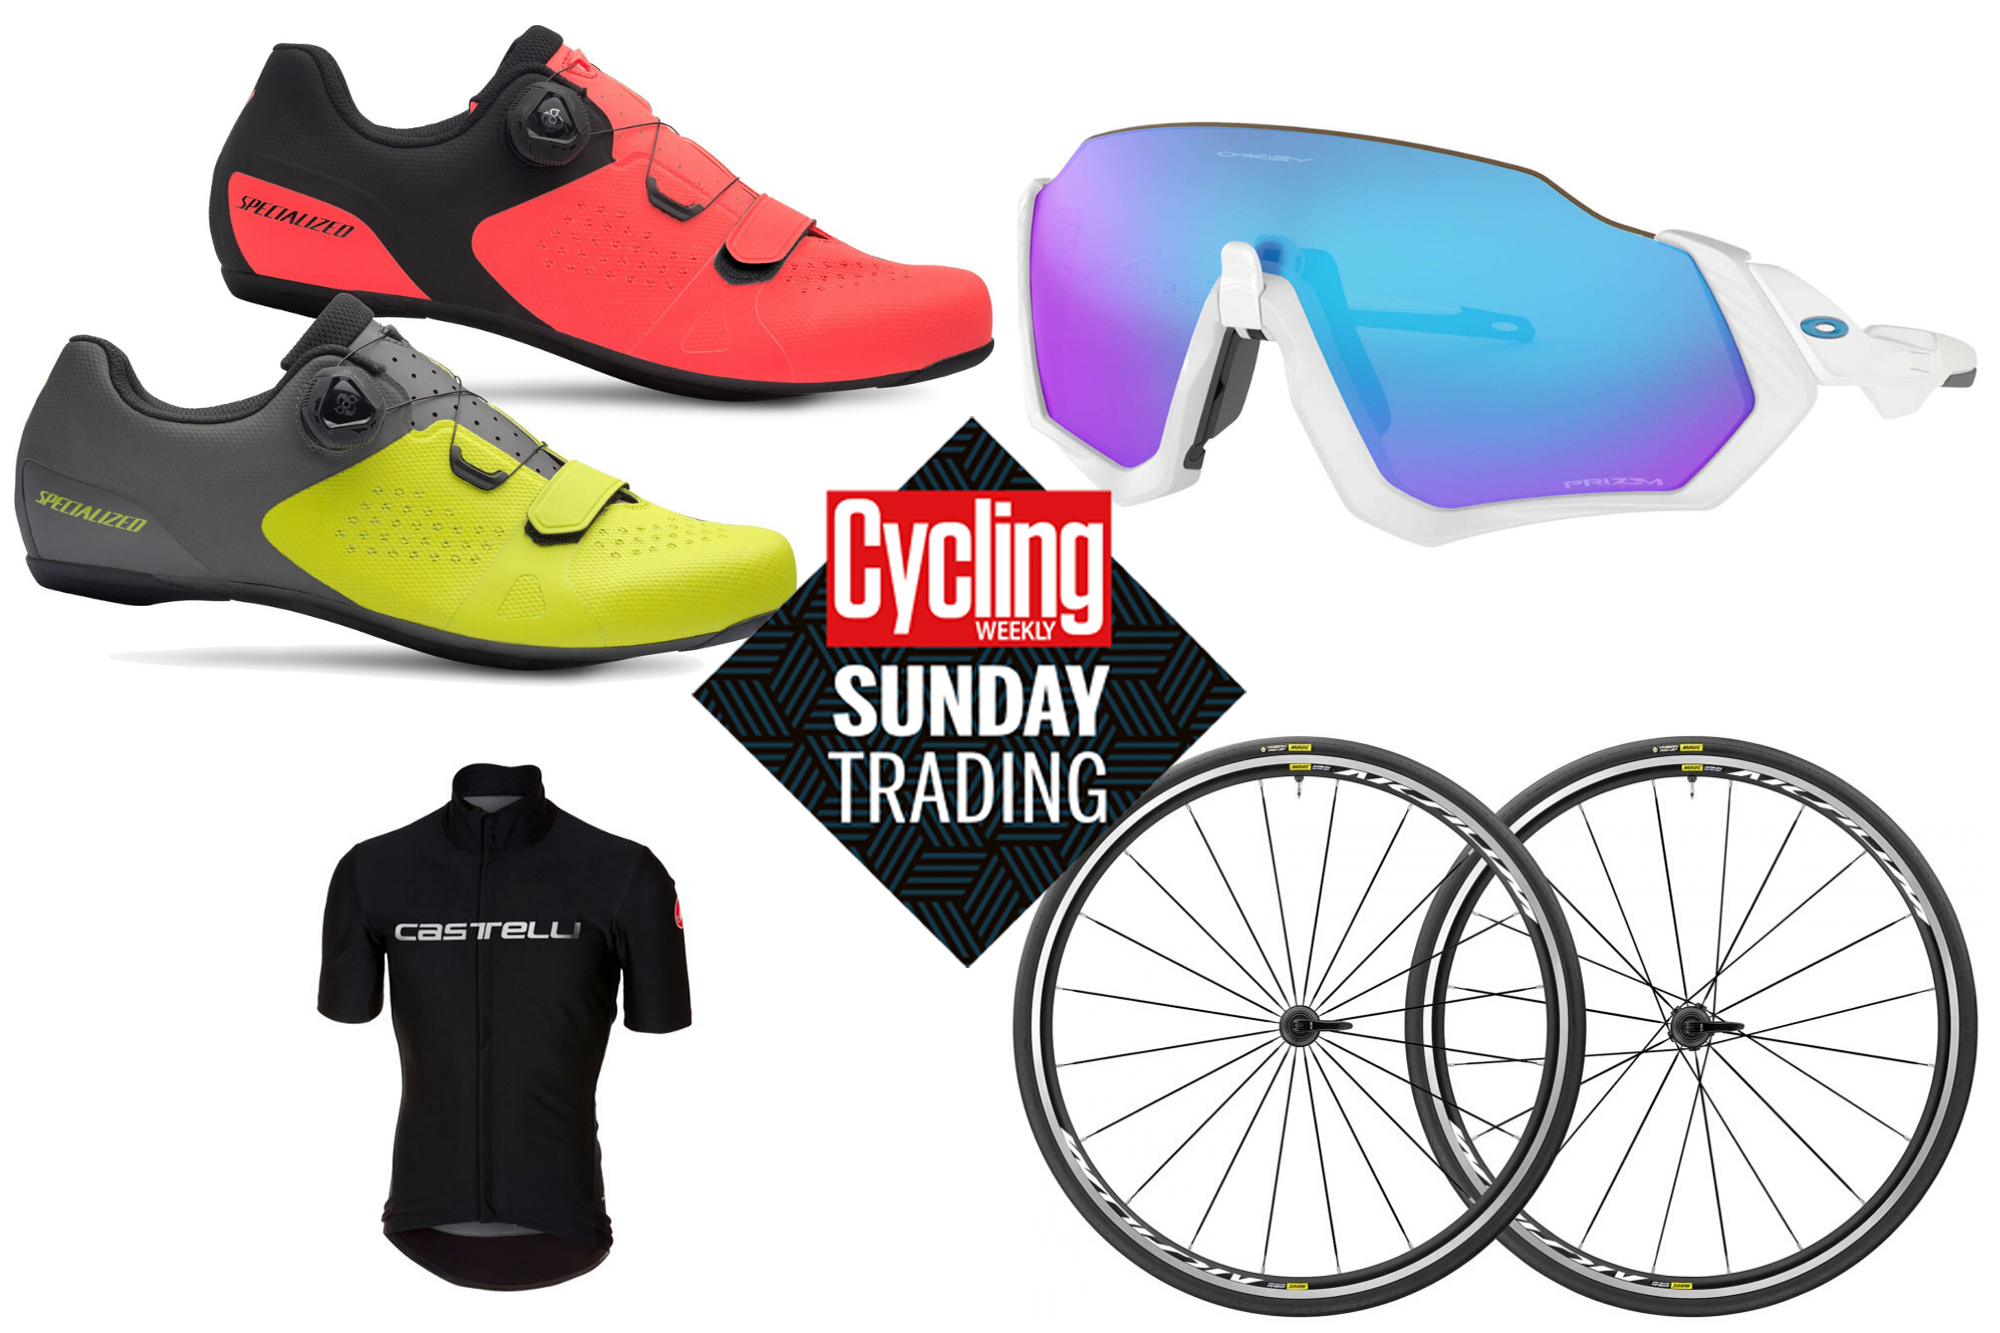 Sunday trading: Big discounts on Mavic wheels, Oakley glasses and much more